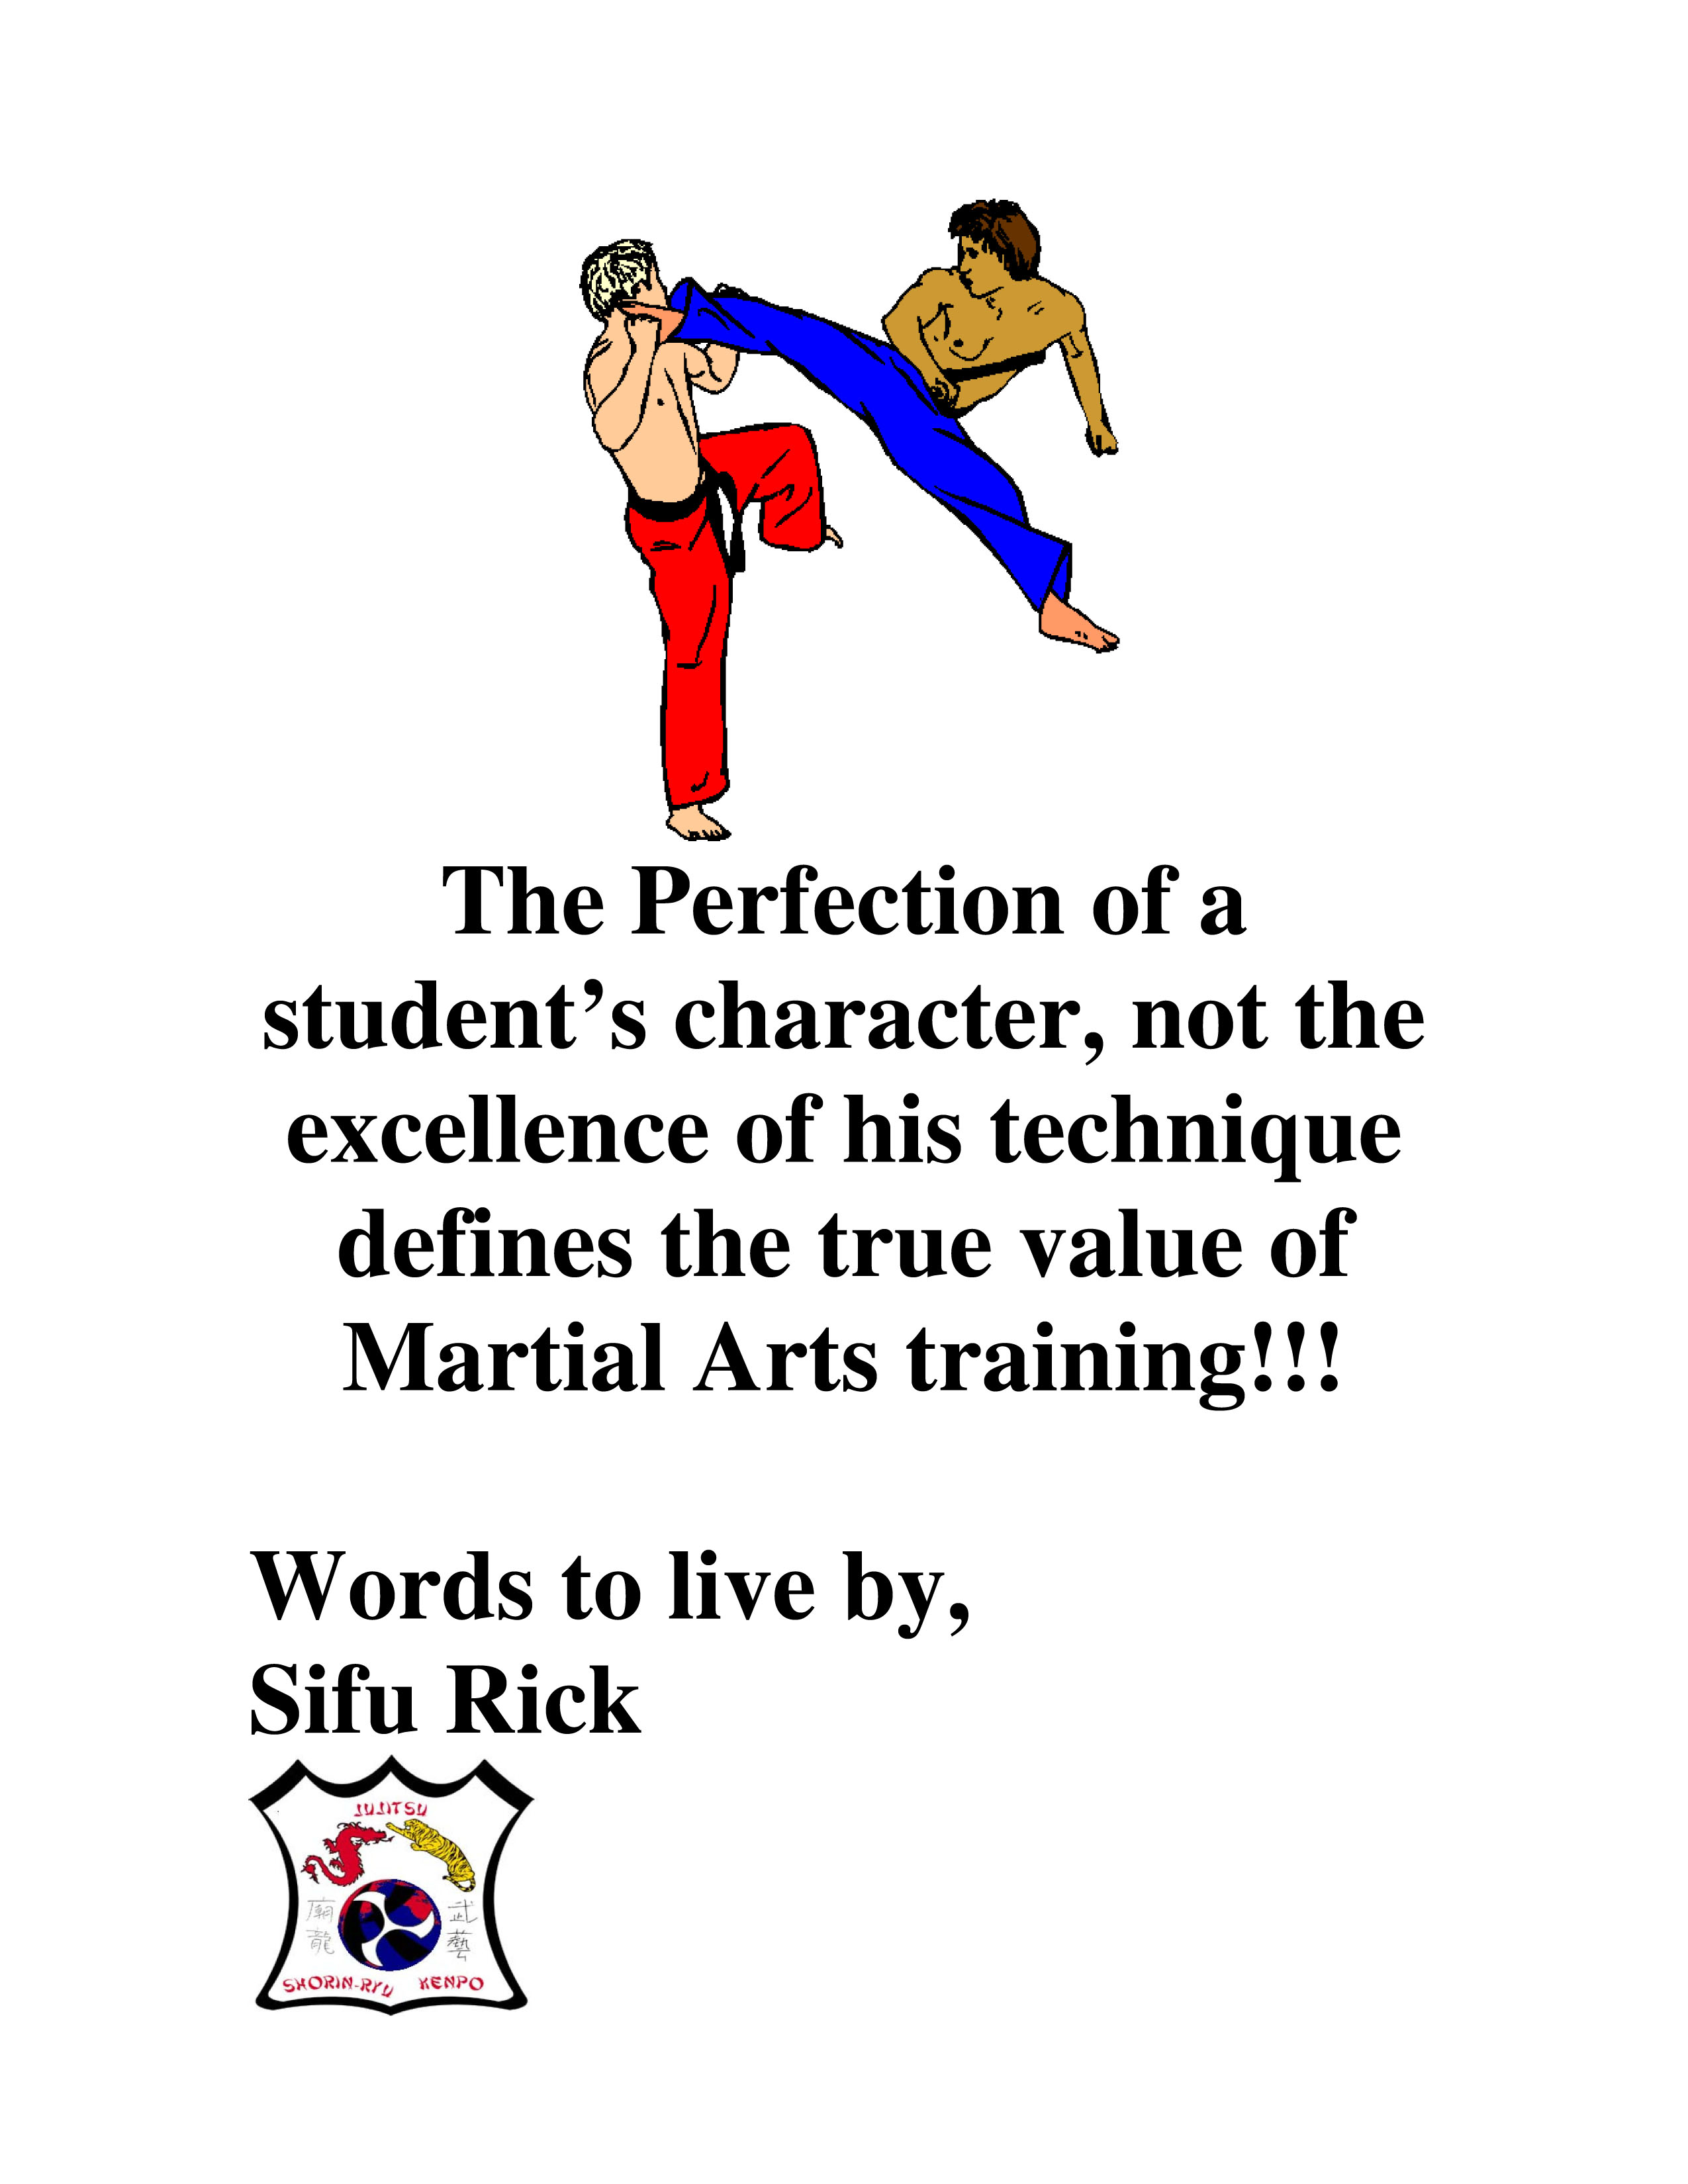 Microsoft Word - The Perfection of a student.doc1.doc